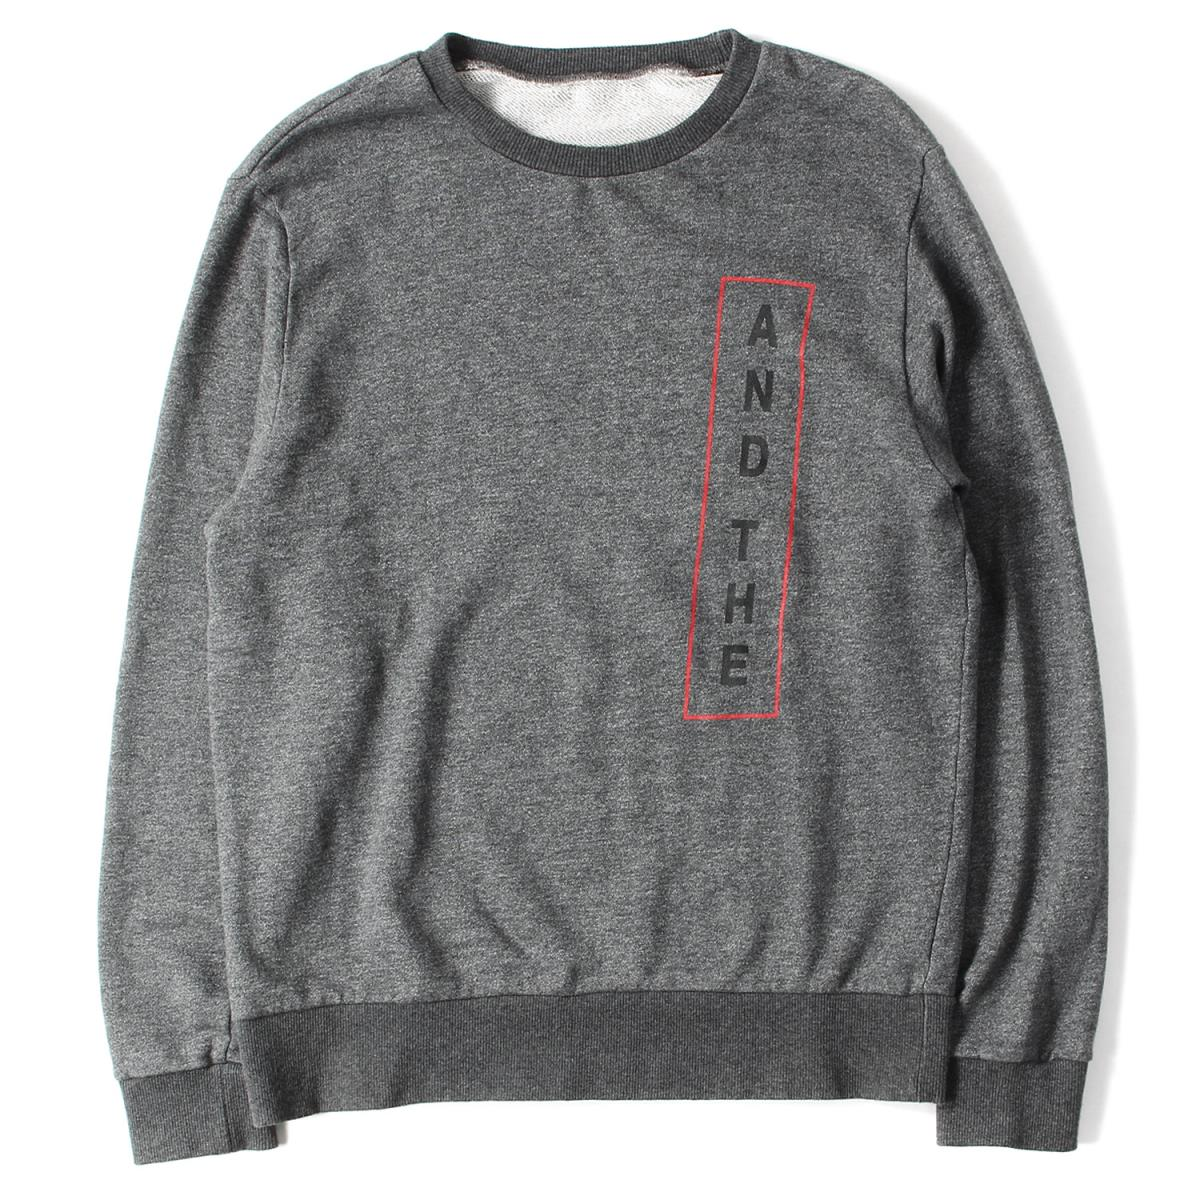 THE PARK・ING GINZA (ザ・パーキングギンザ) AND THEロゴクルーネックスウェット 美品 グレー L 【K2000】【中古】【あす楽☆対応可】